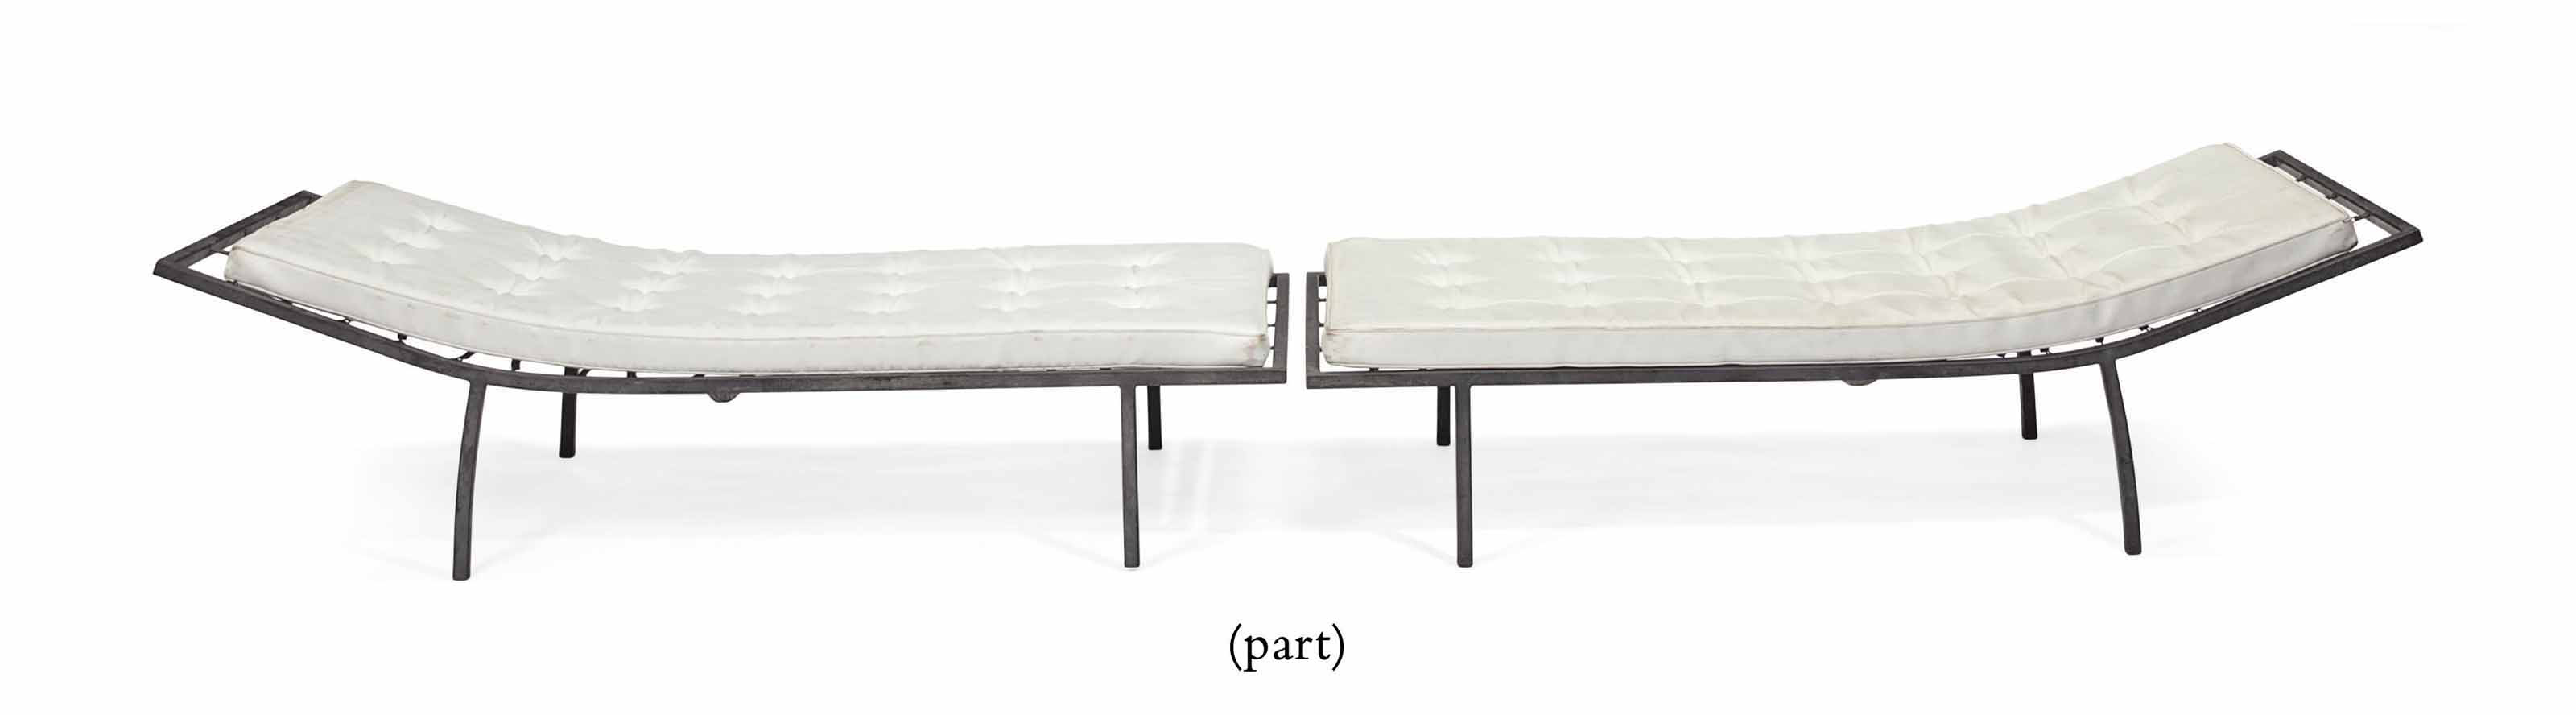 A PAIR OF BLACK-PAINTED METAL CHAISE LONGUES